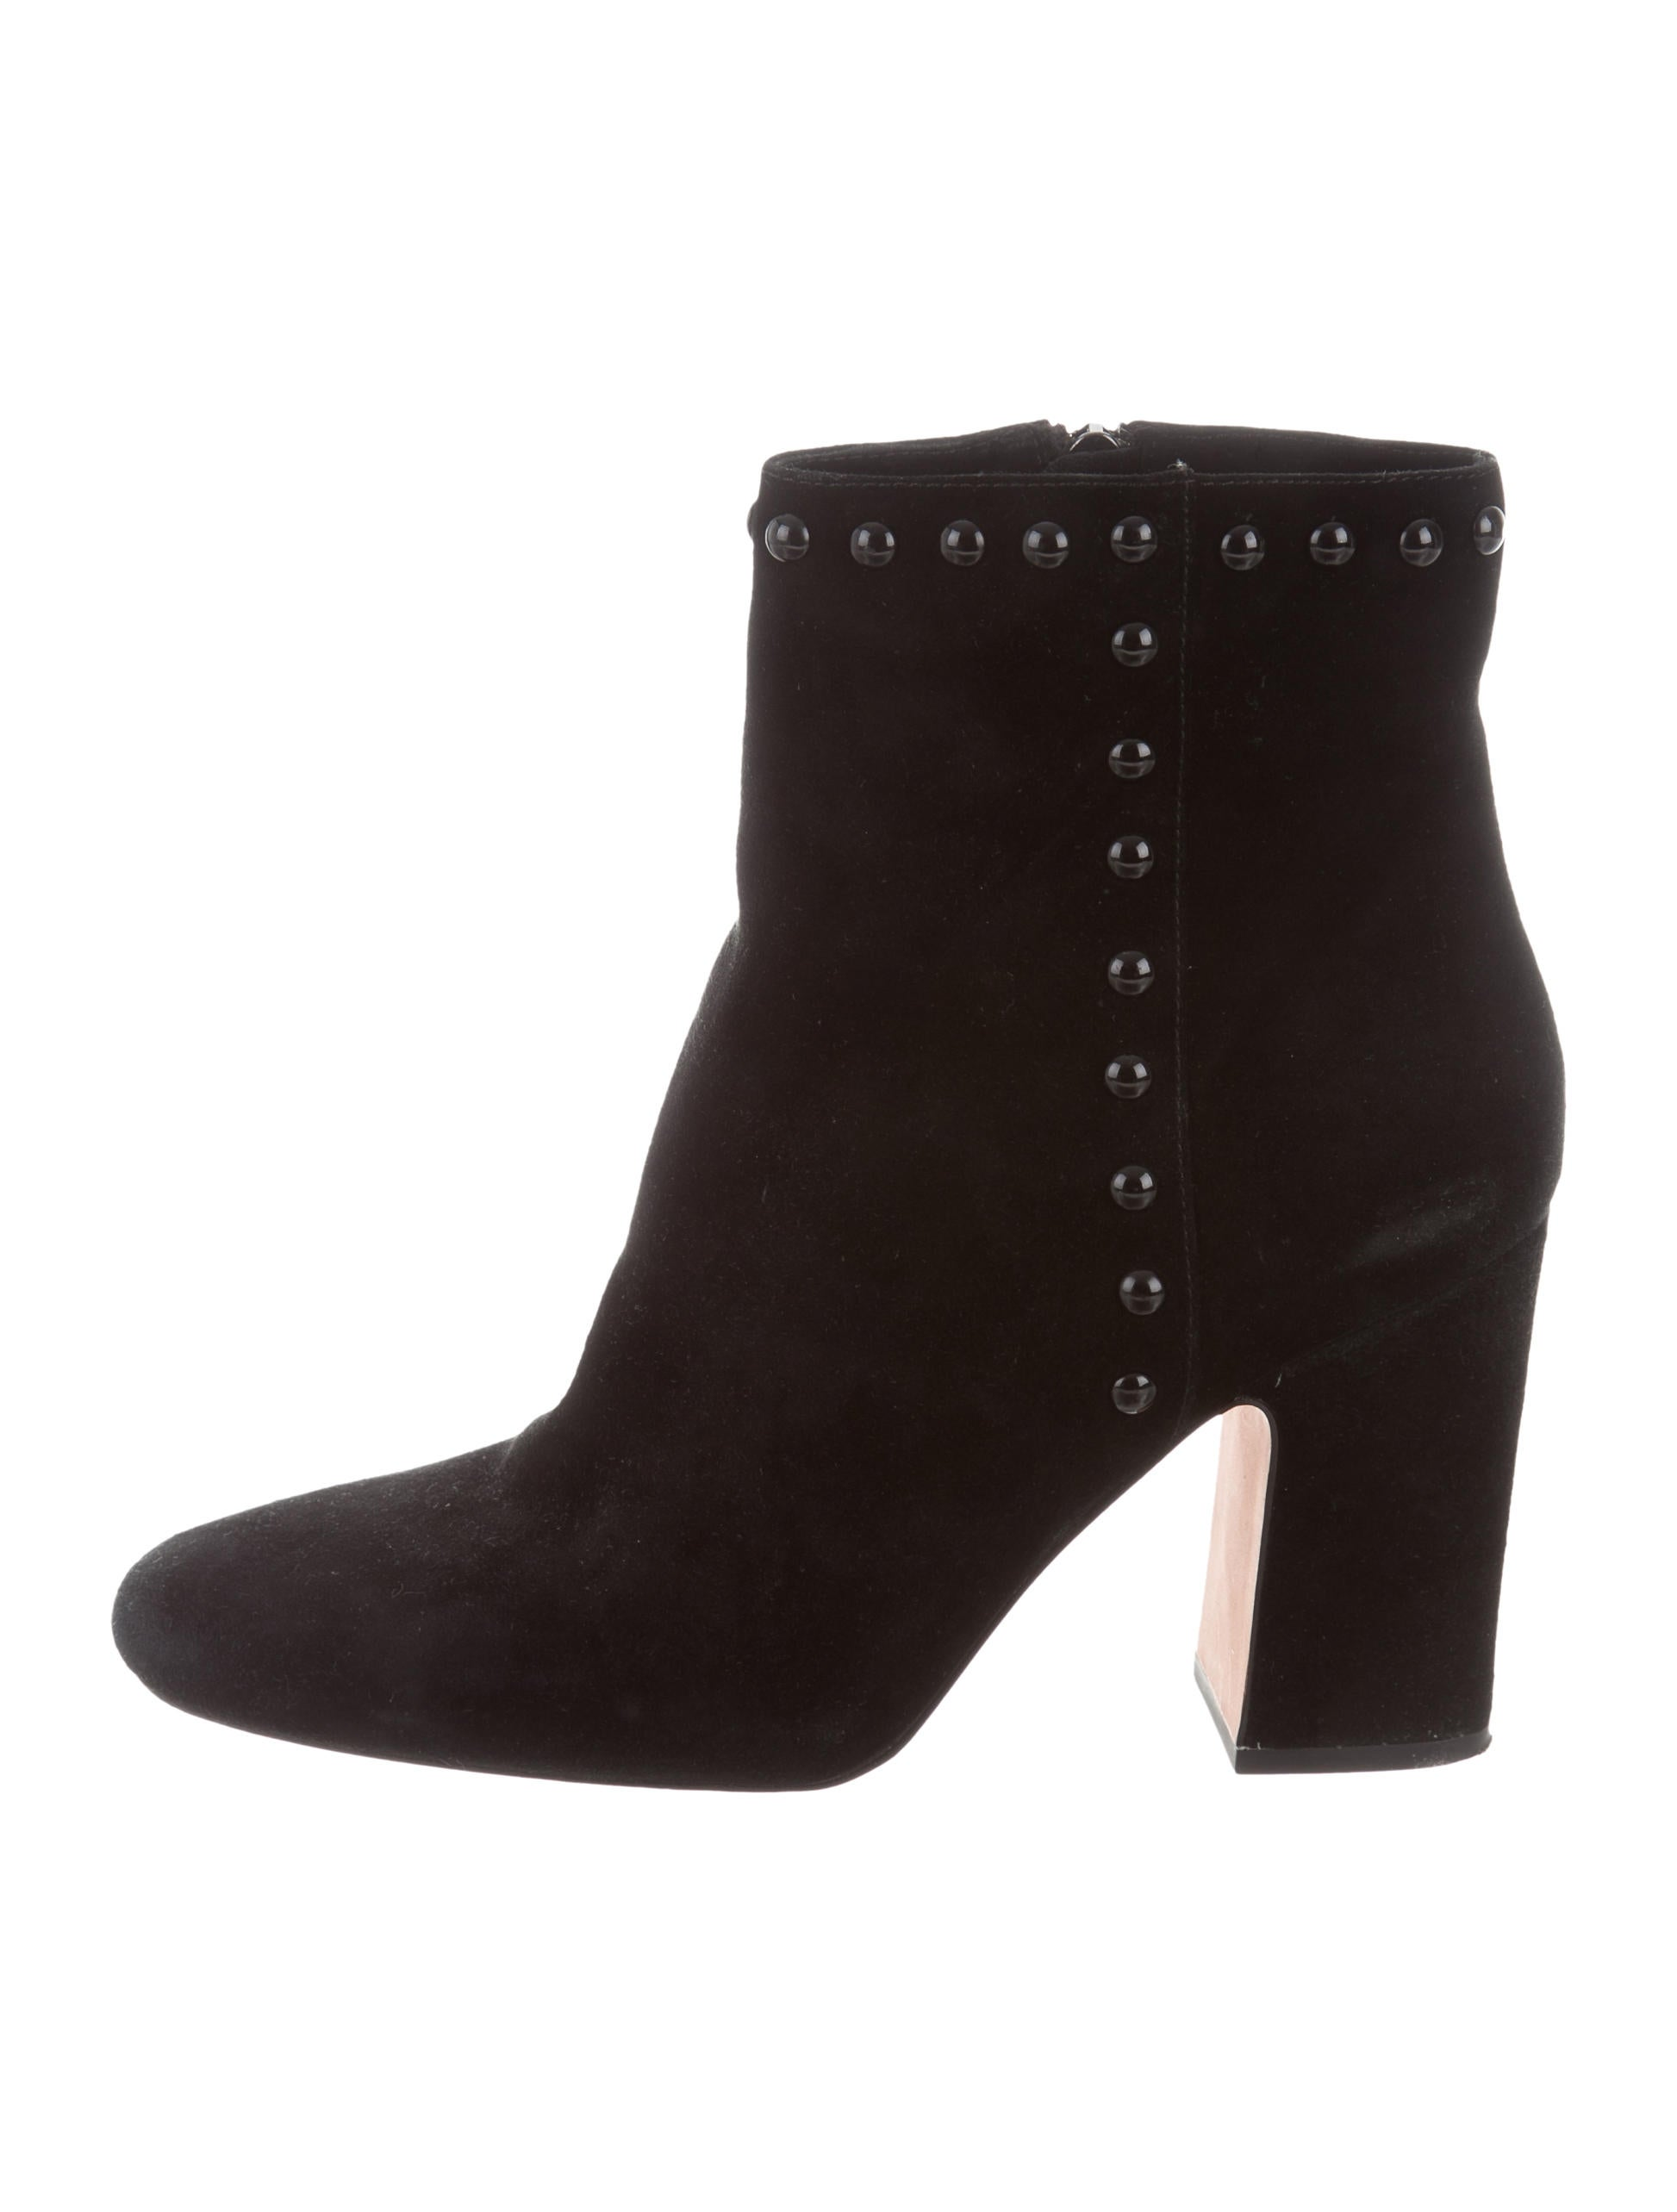 coach suede studded ankle boots shoes cch21467 the